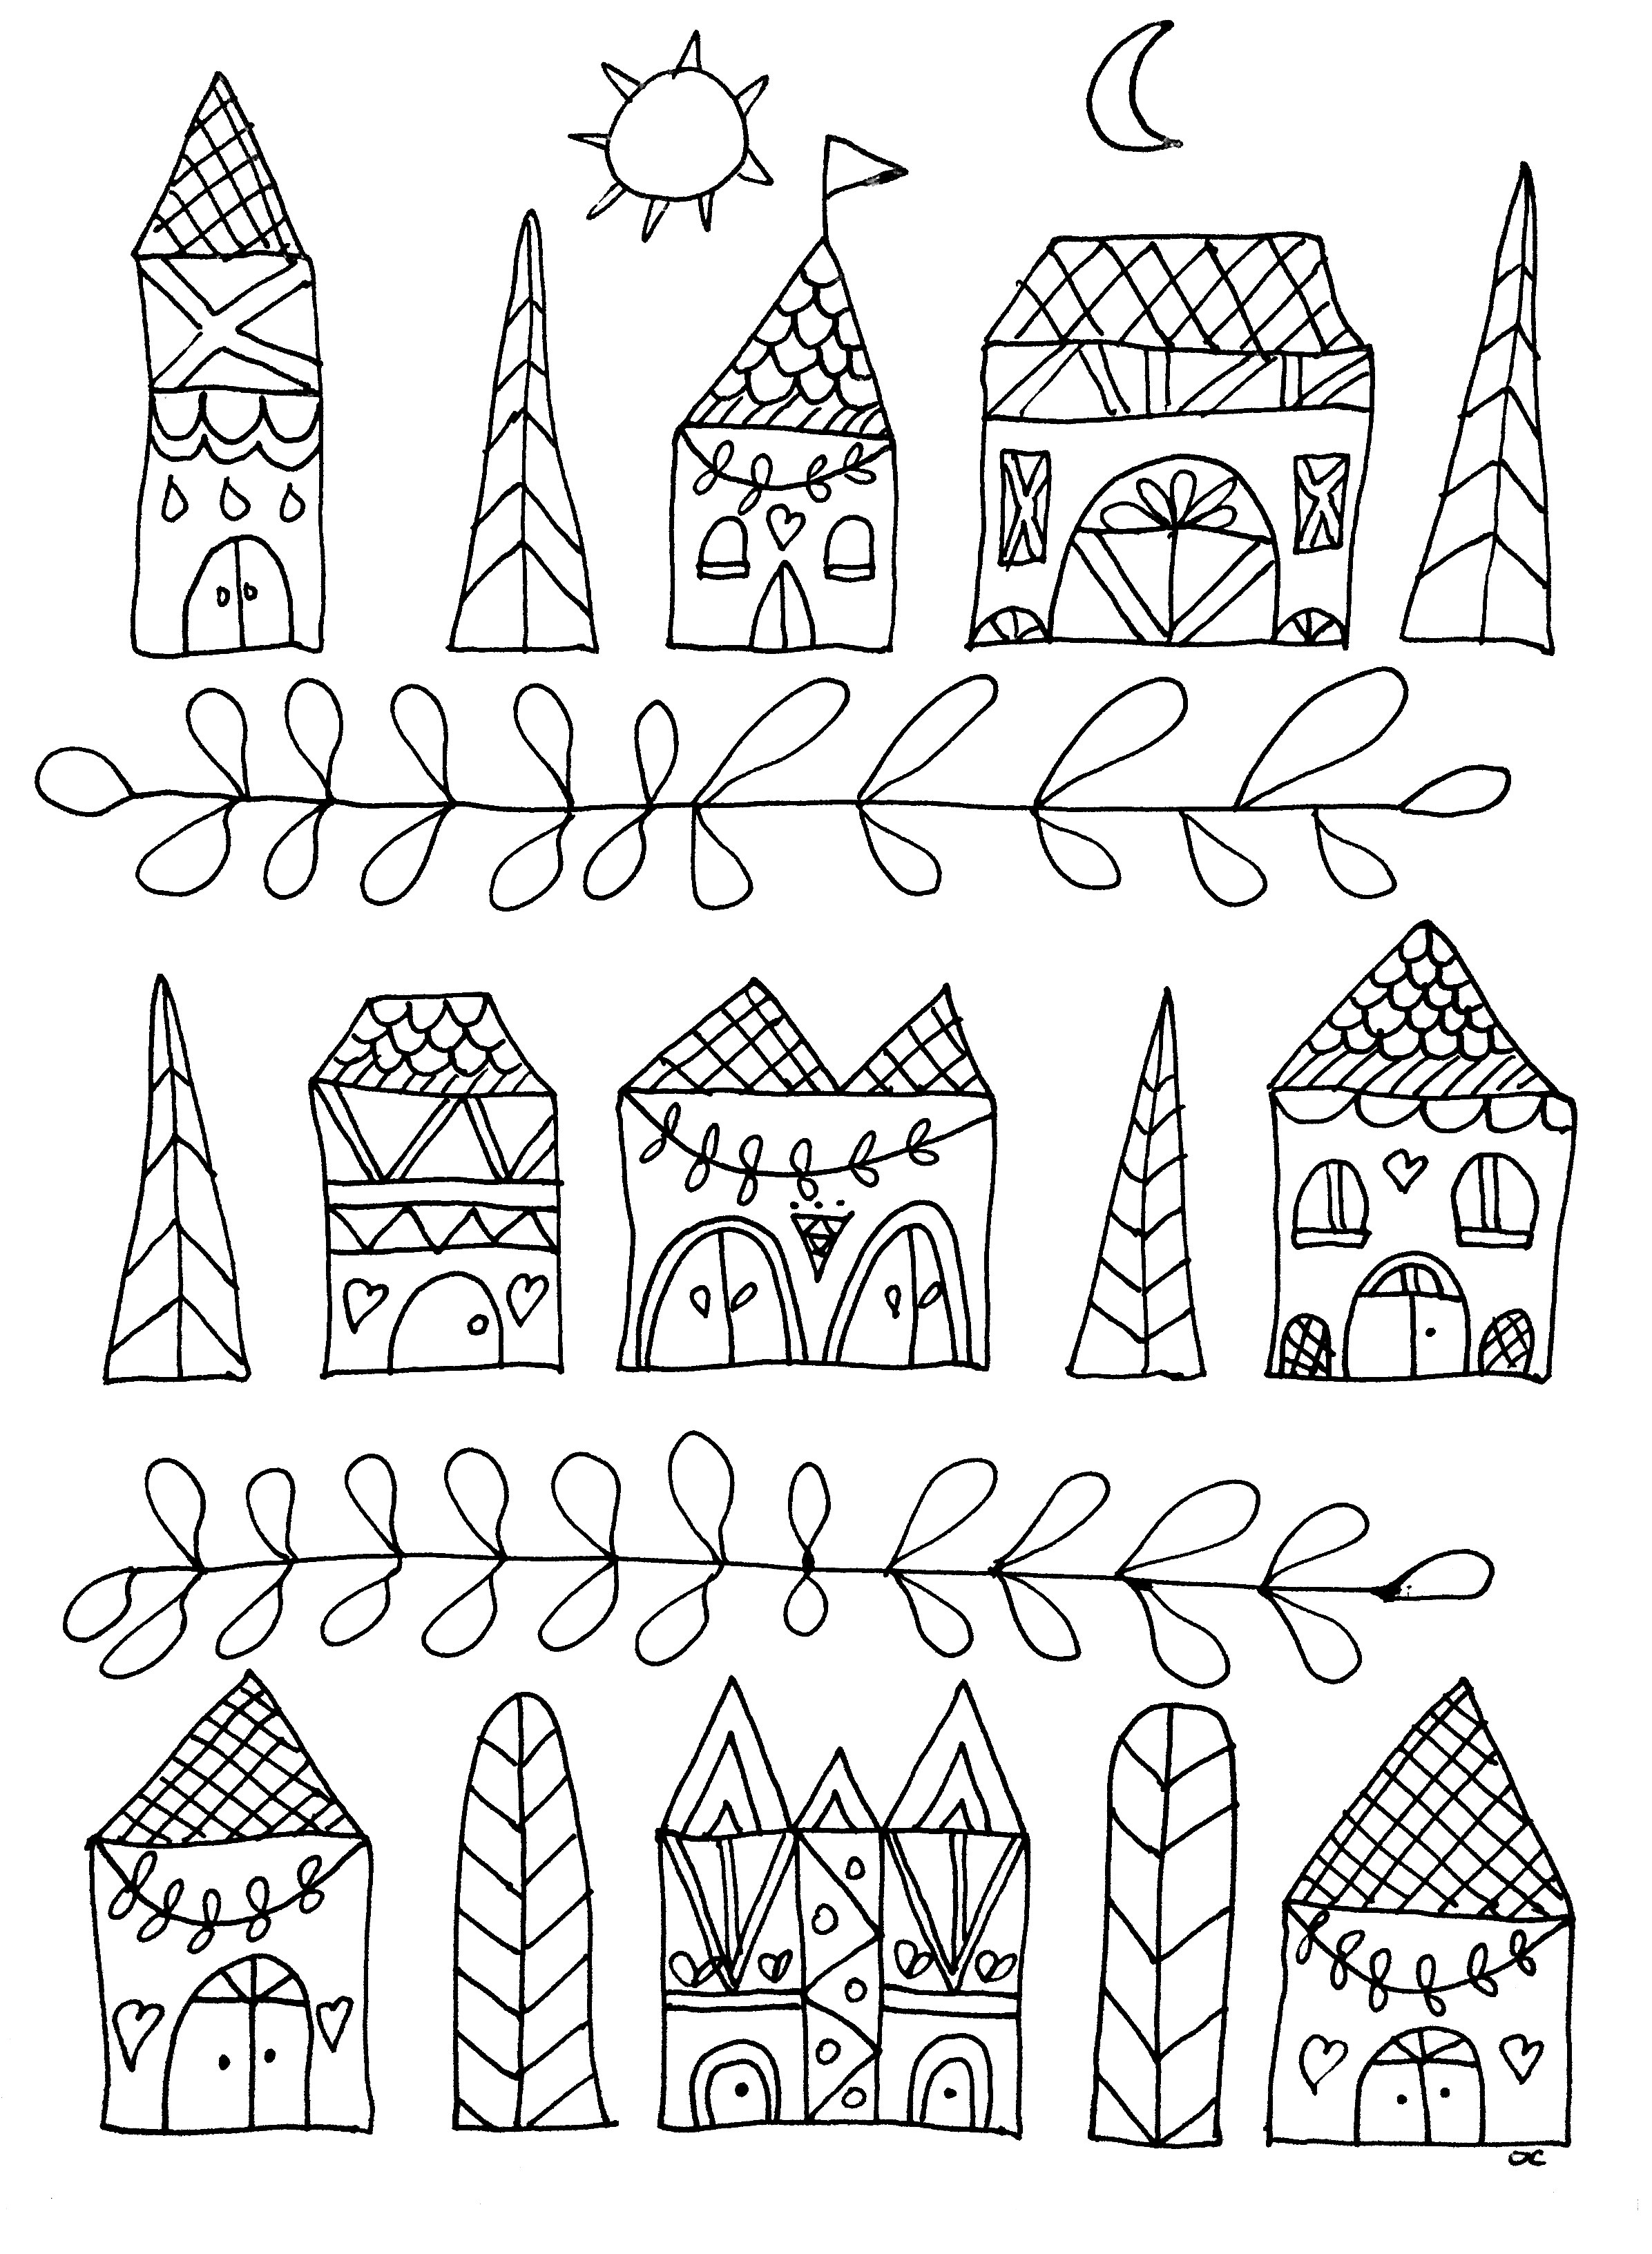 Simple houses - Anti stress Adult Coloring Pages - Page 6